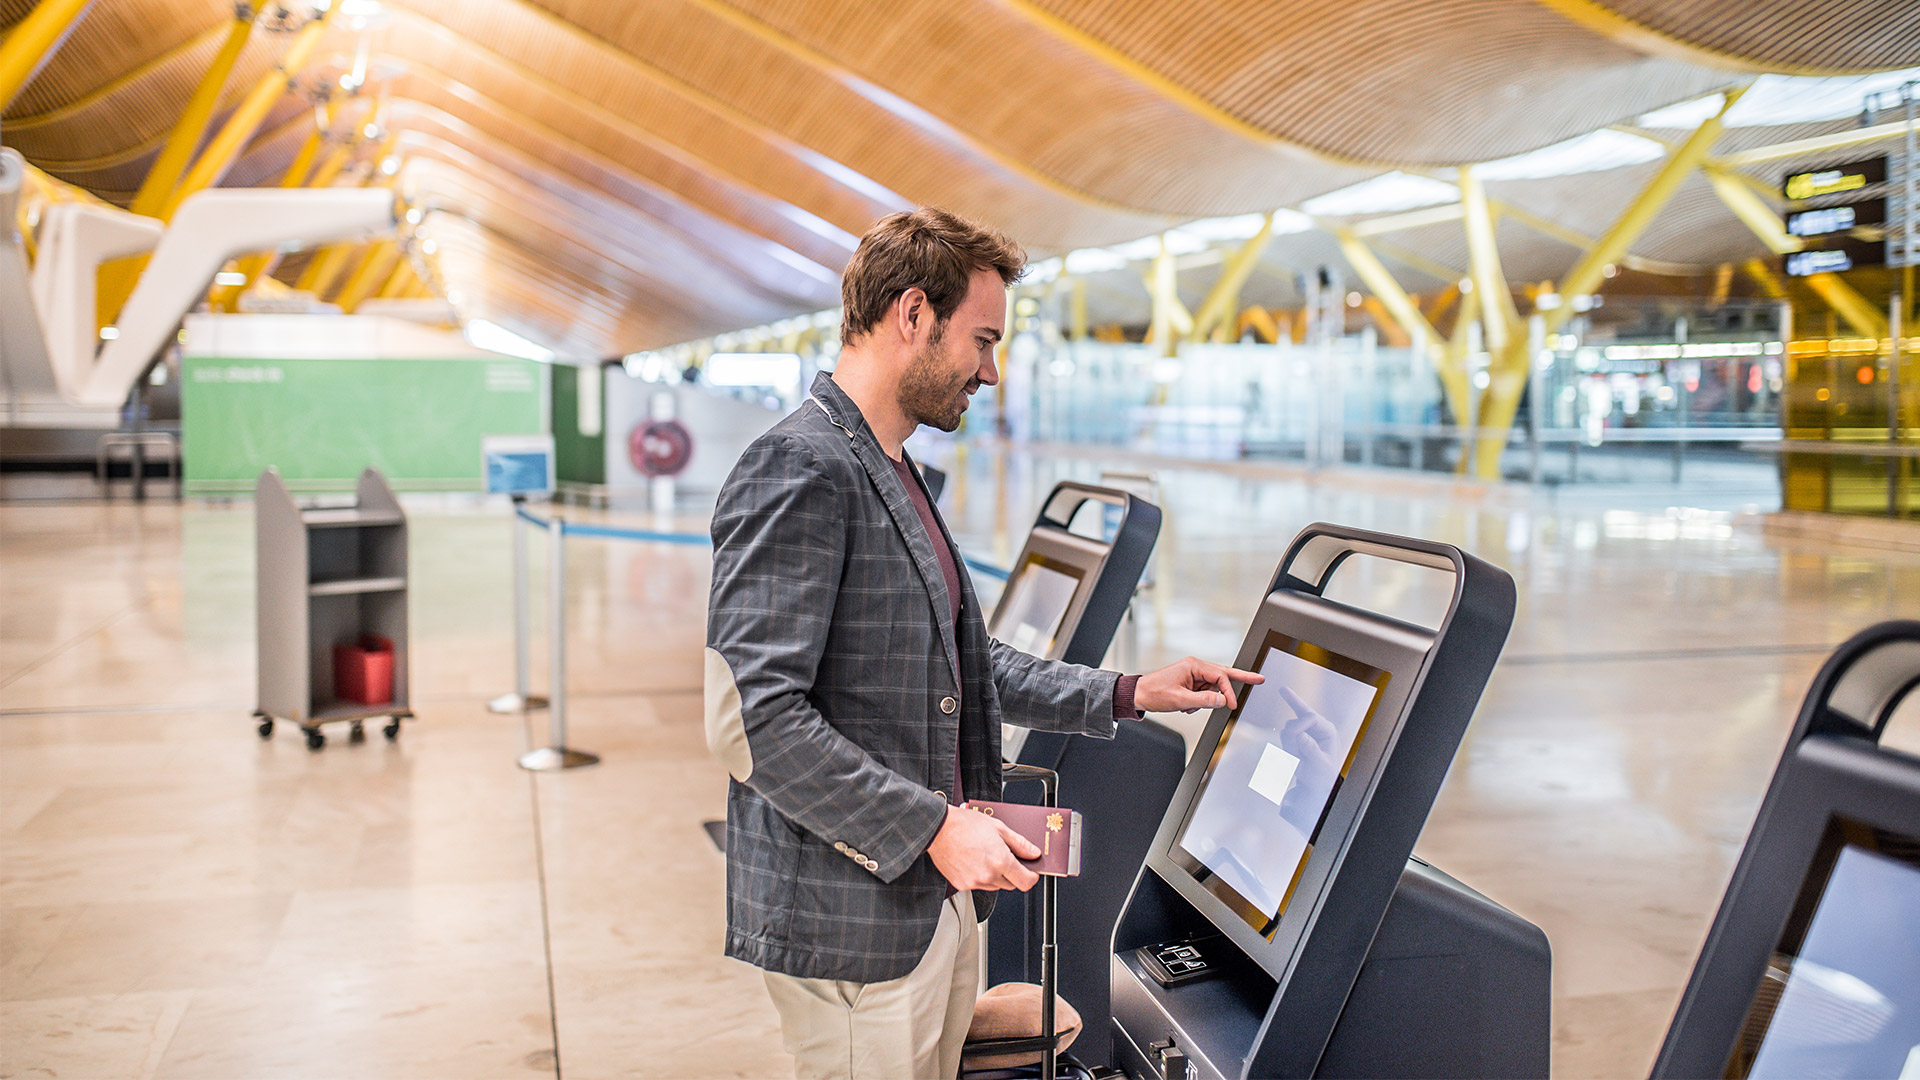 Airport self-check in | David Prado, Adobe Stock